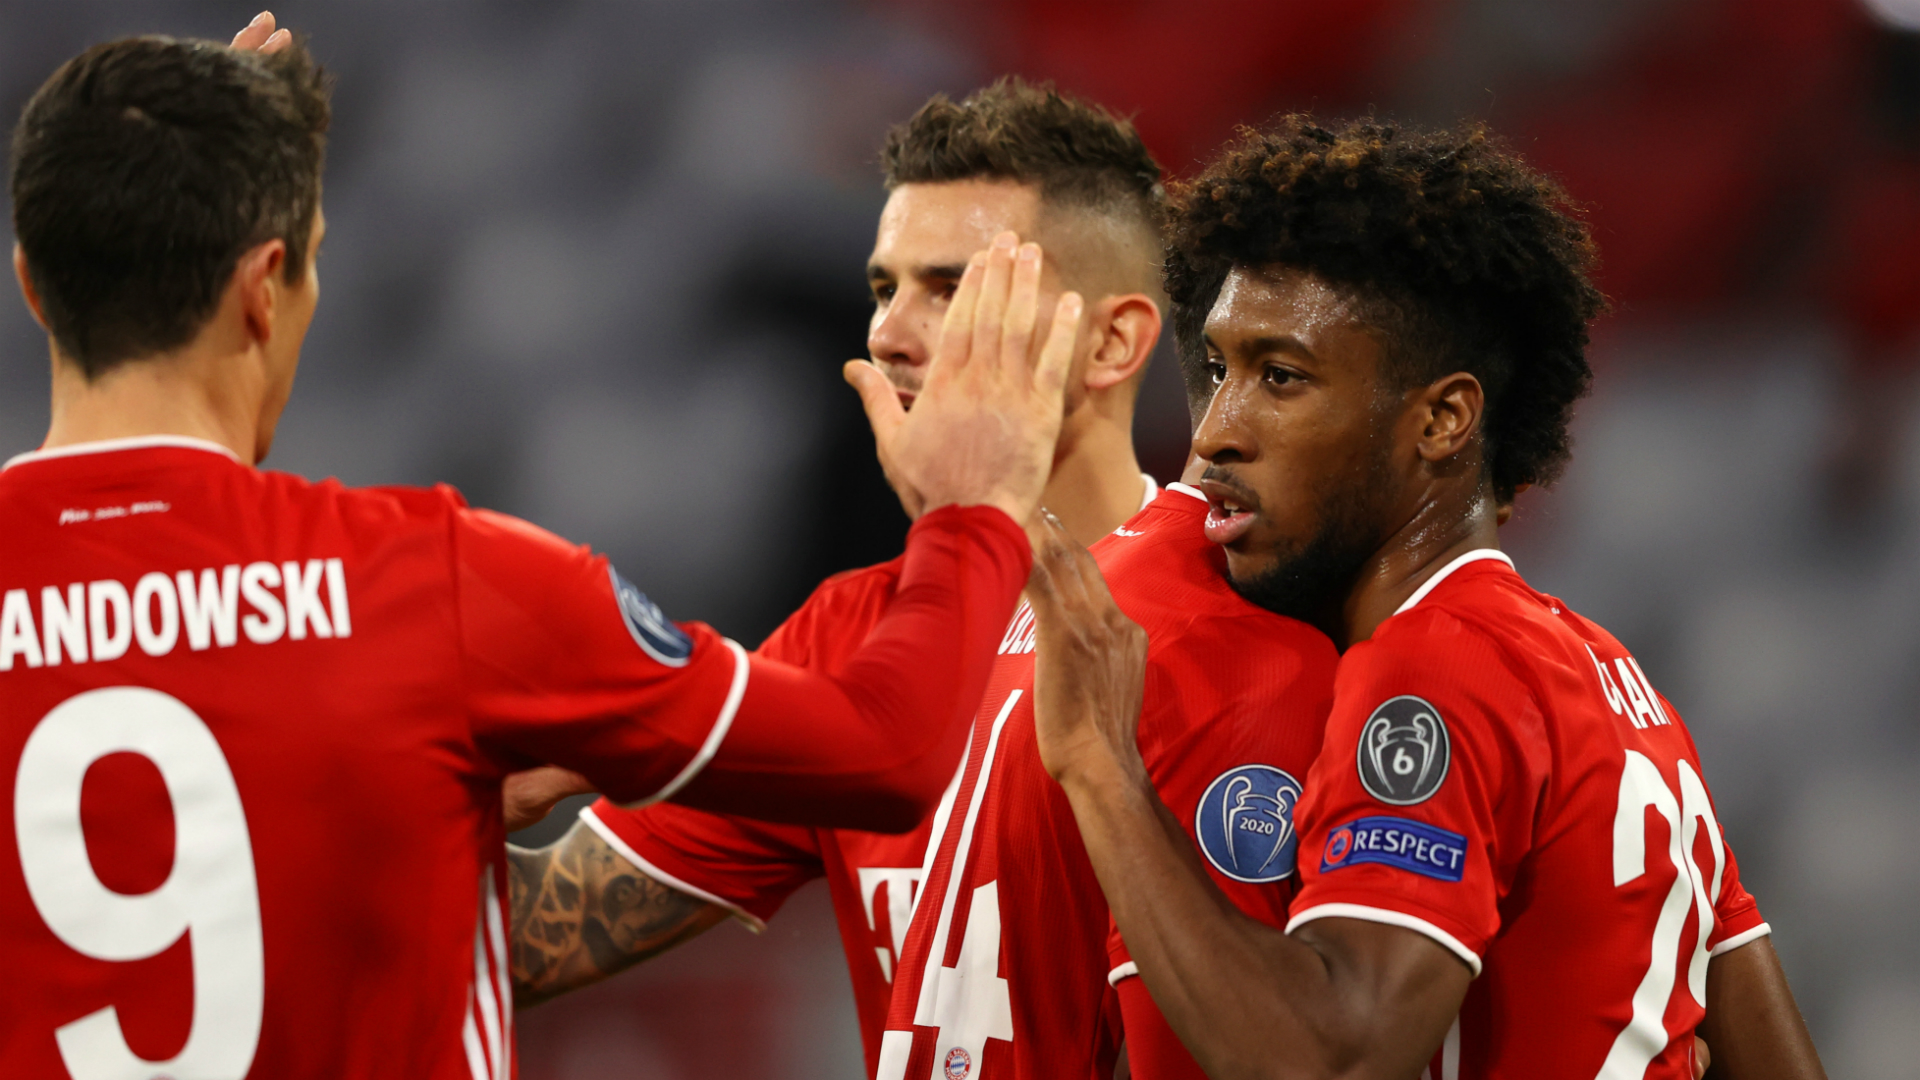 Bayern Munich 4-0 Atletico Madrid: Holders win easily as Coman stars again